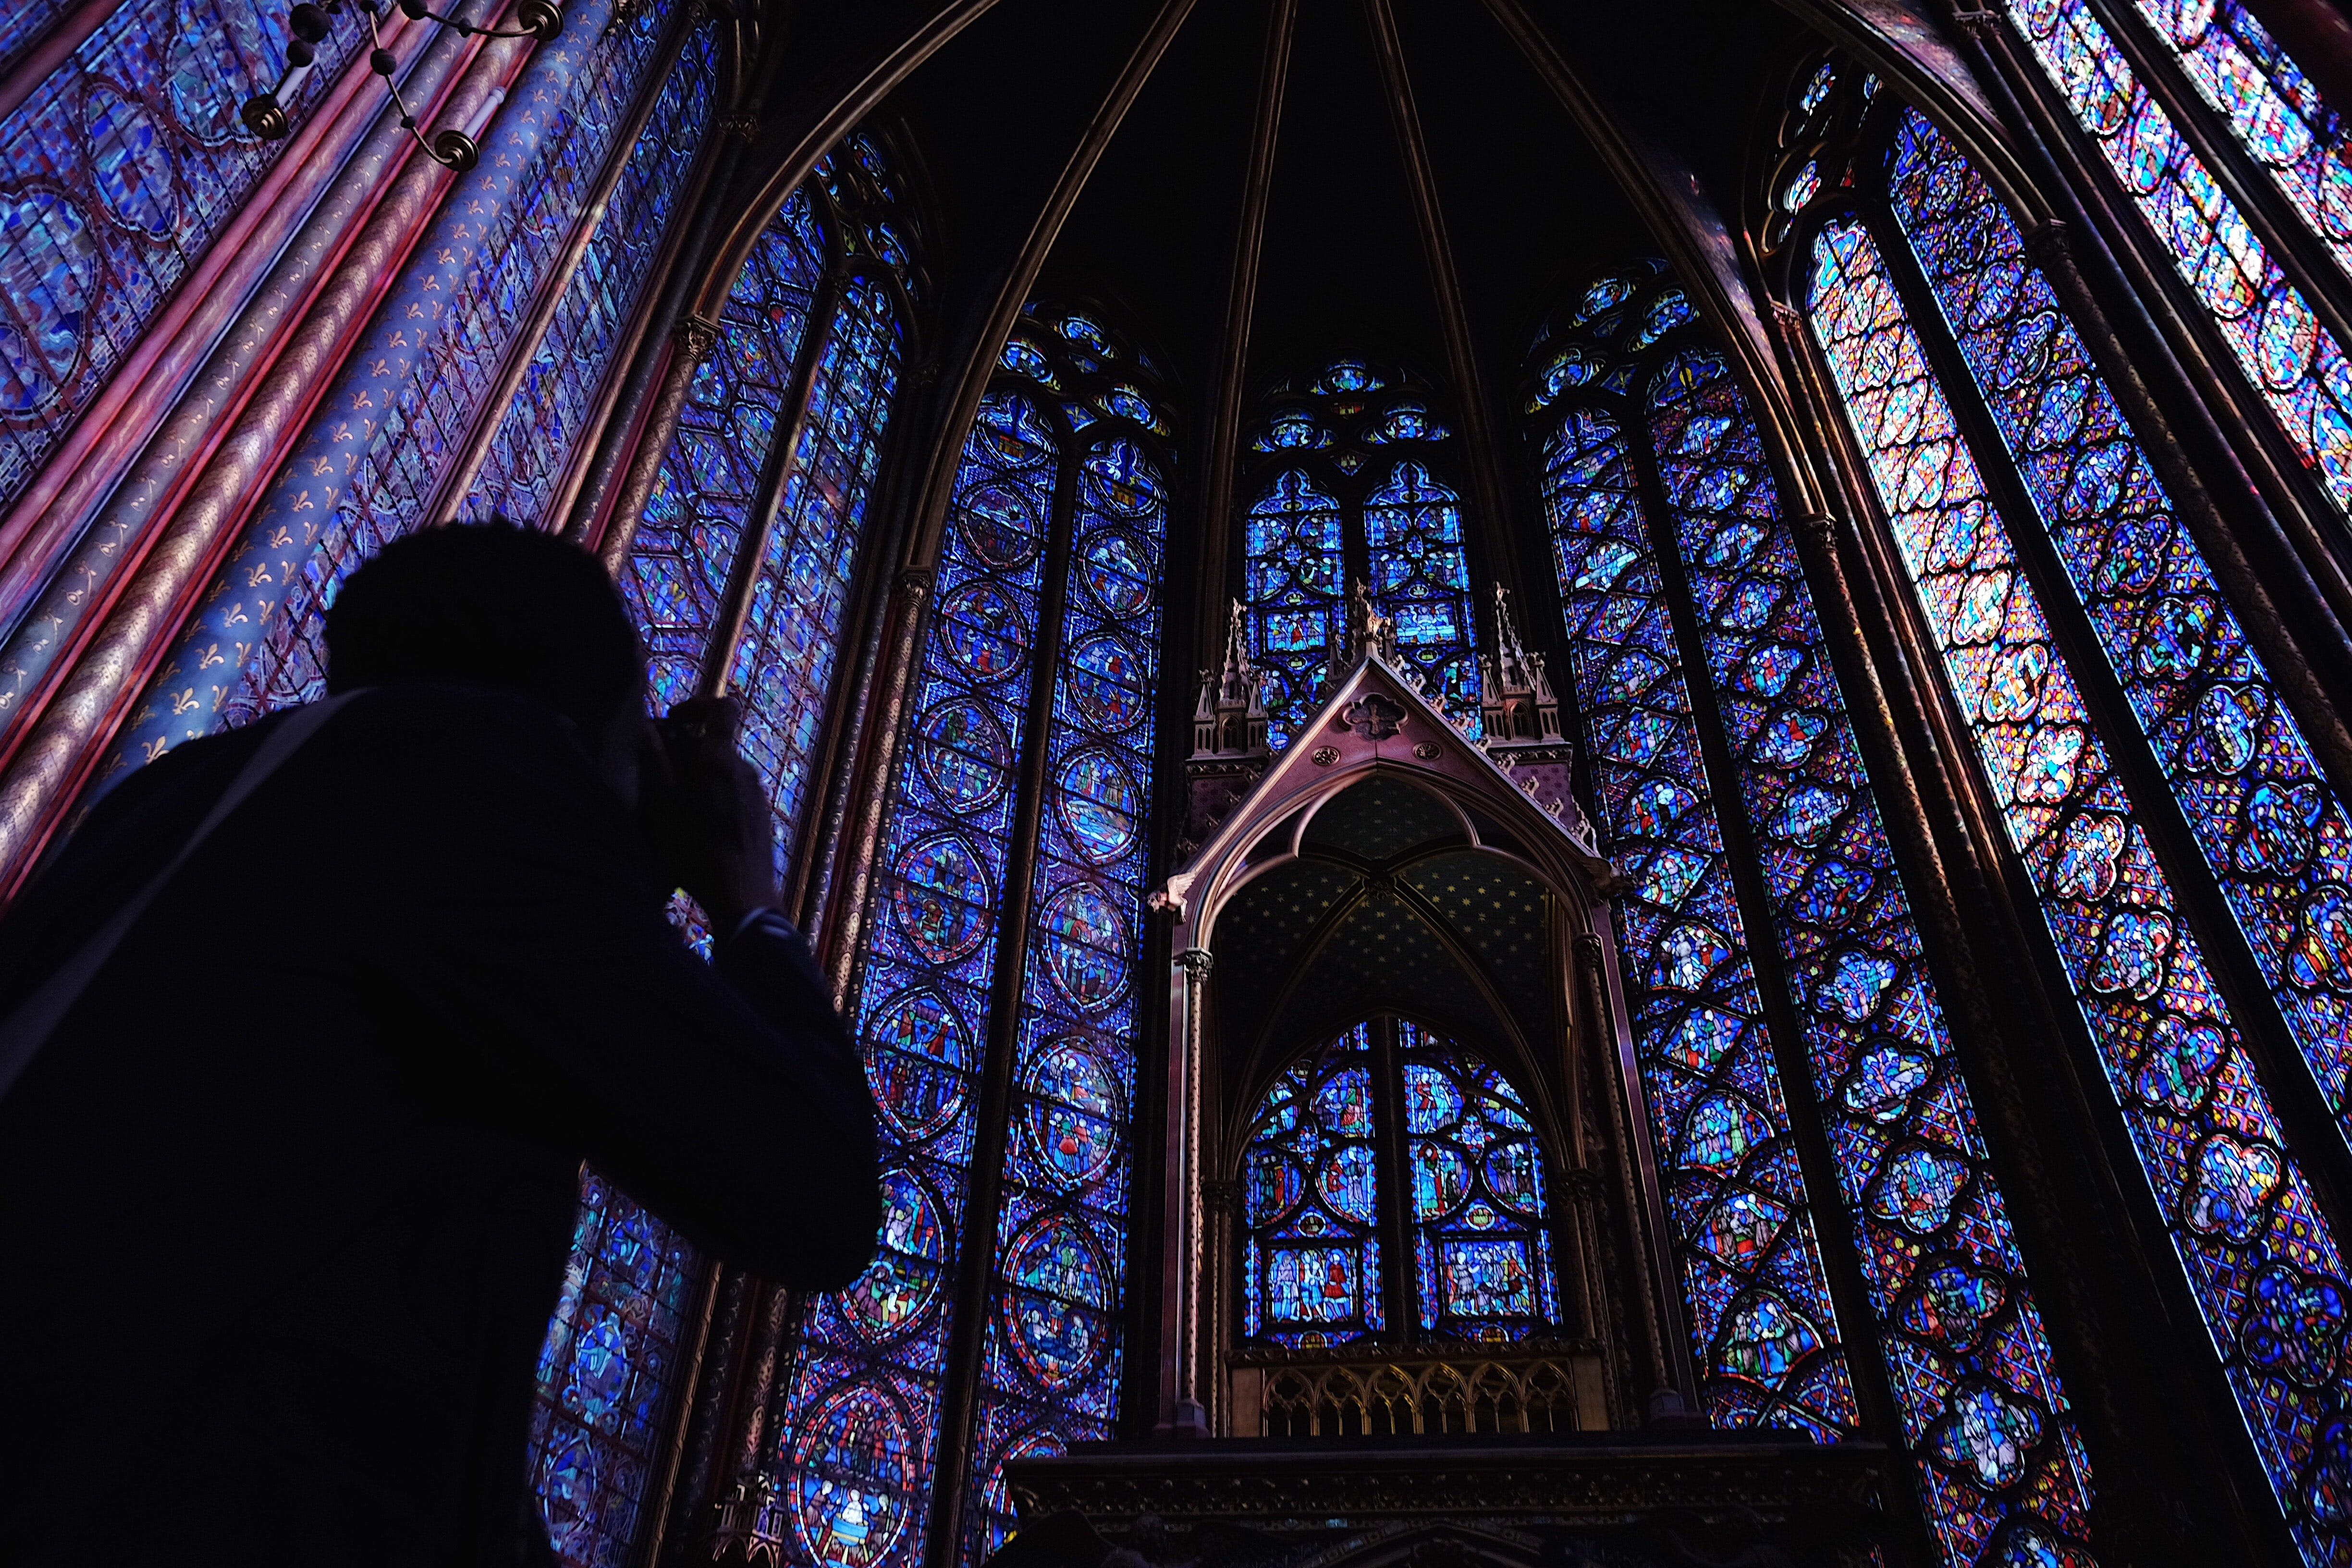 silhouette of person holding camera taking picture cathedral interior